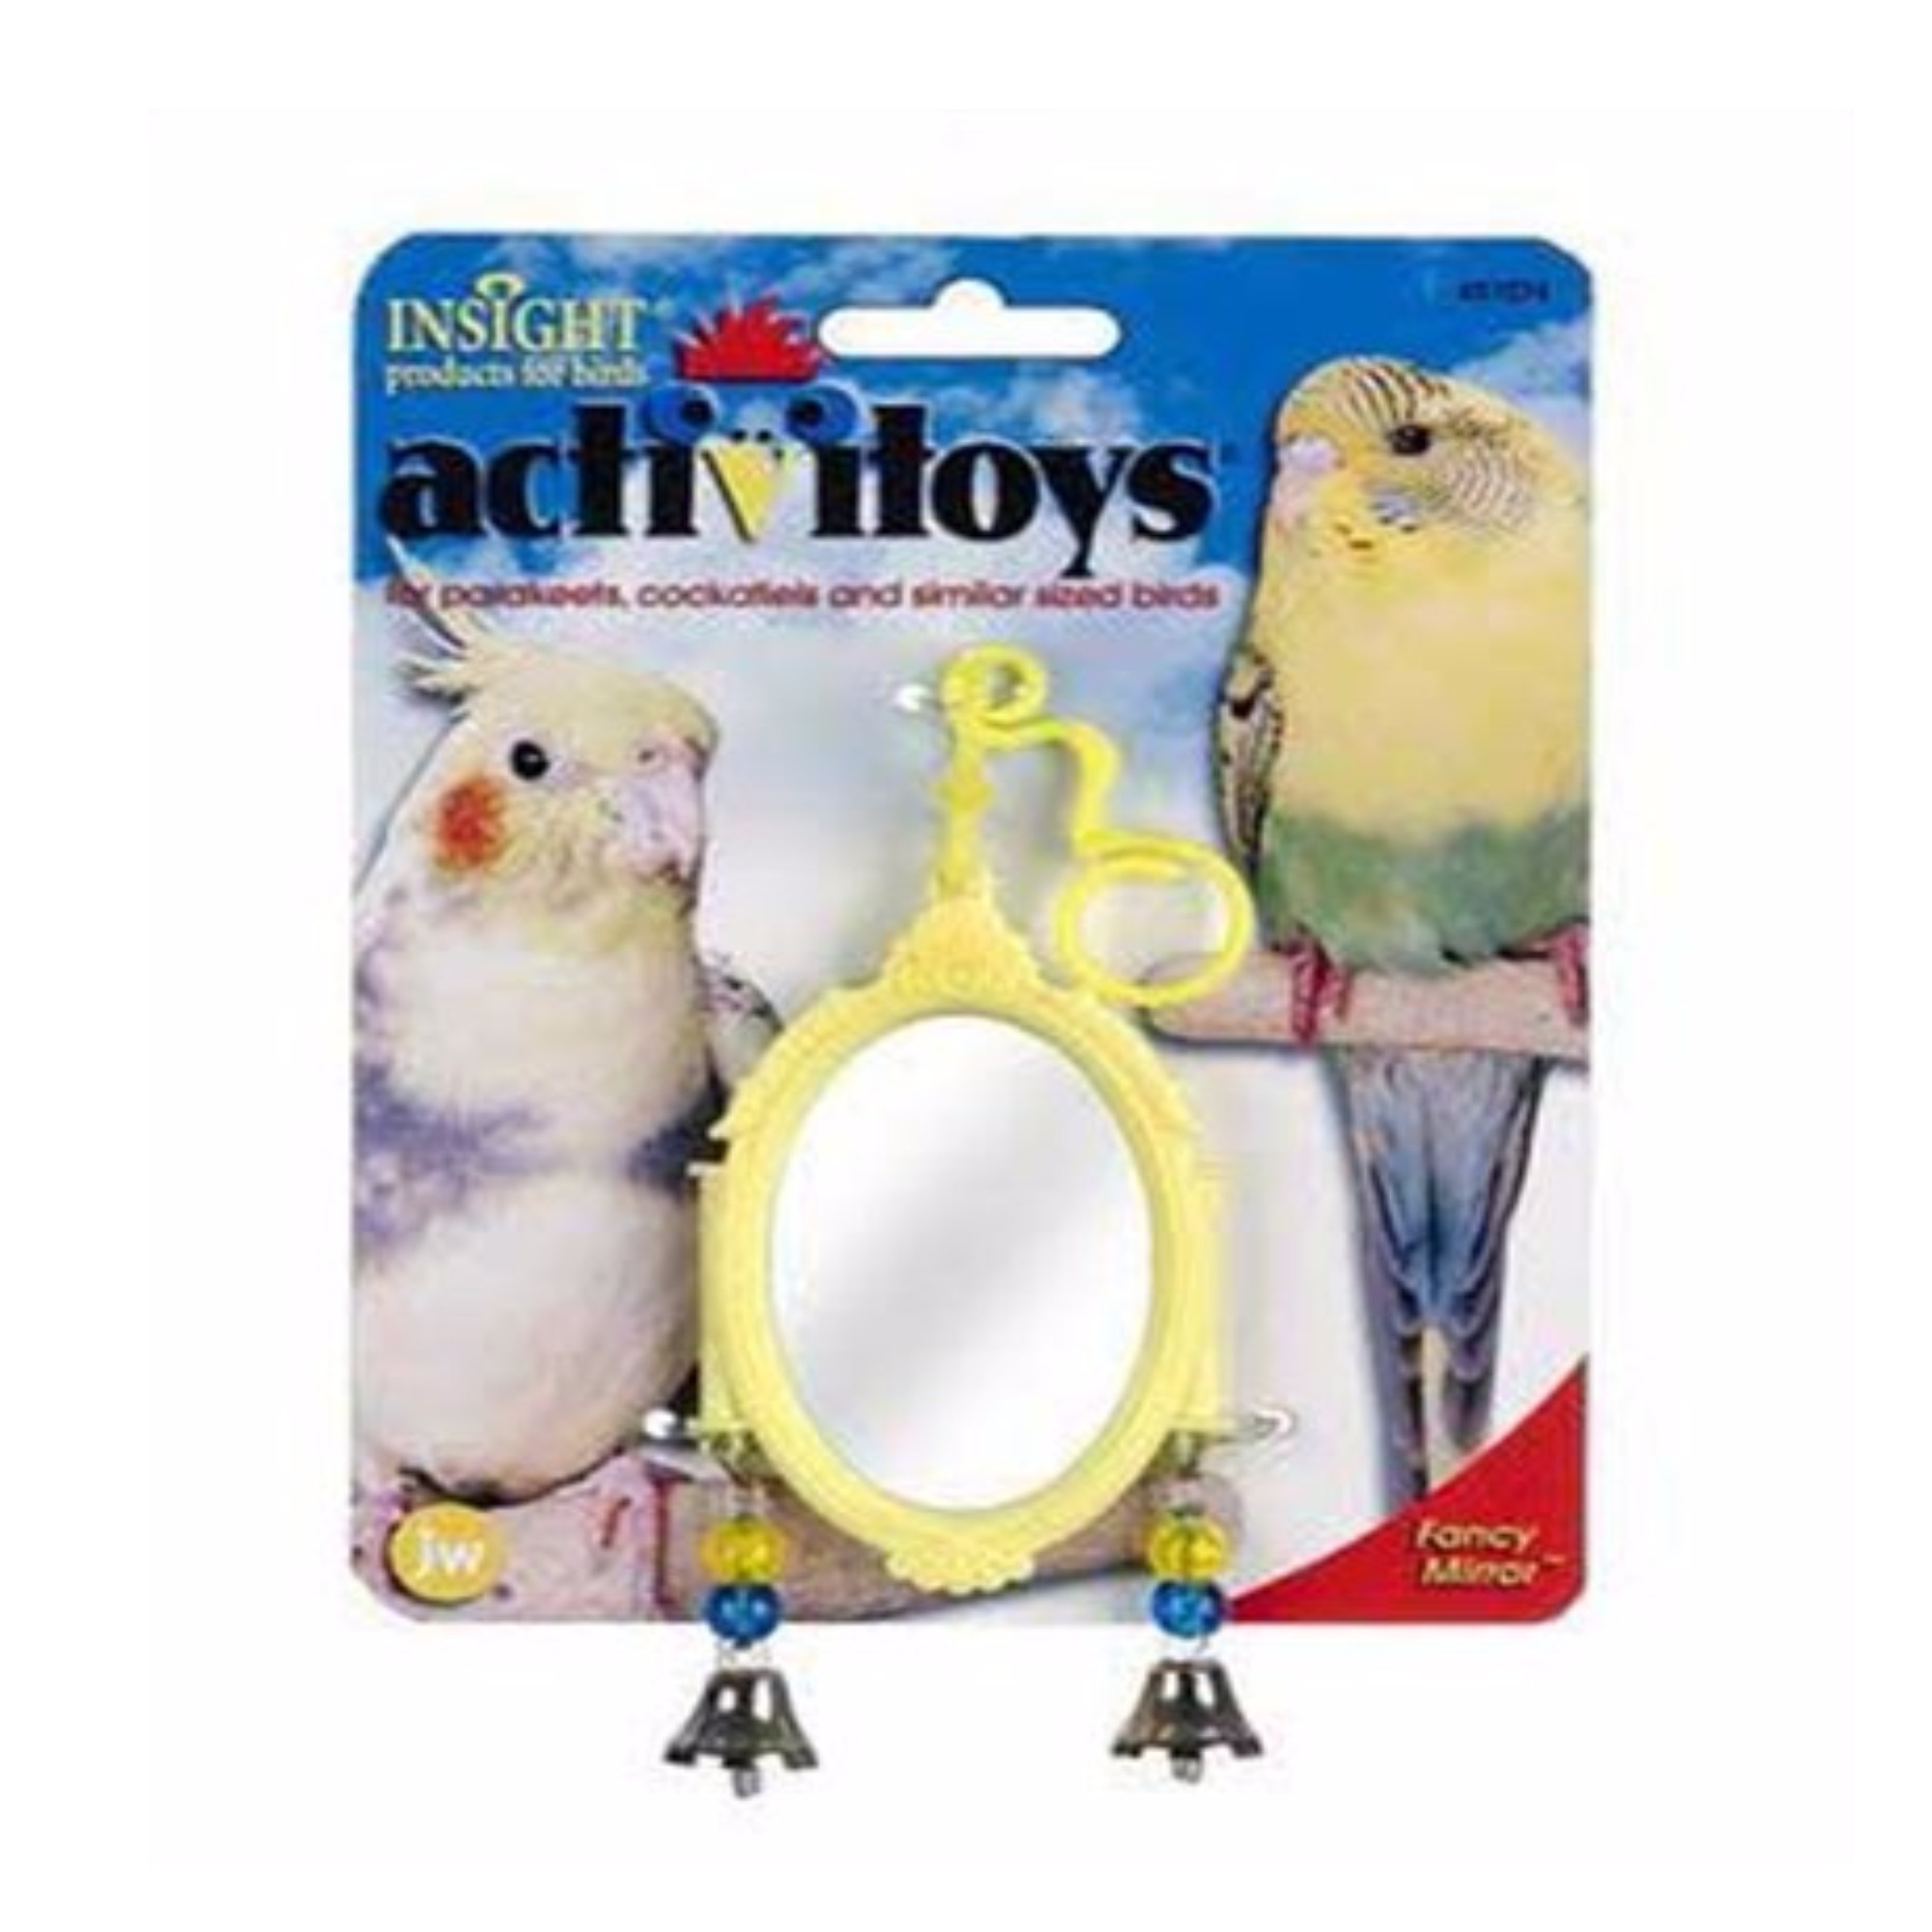 Insight Bird Toy Fancy Mirror Multi-Colored